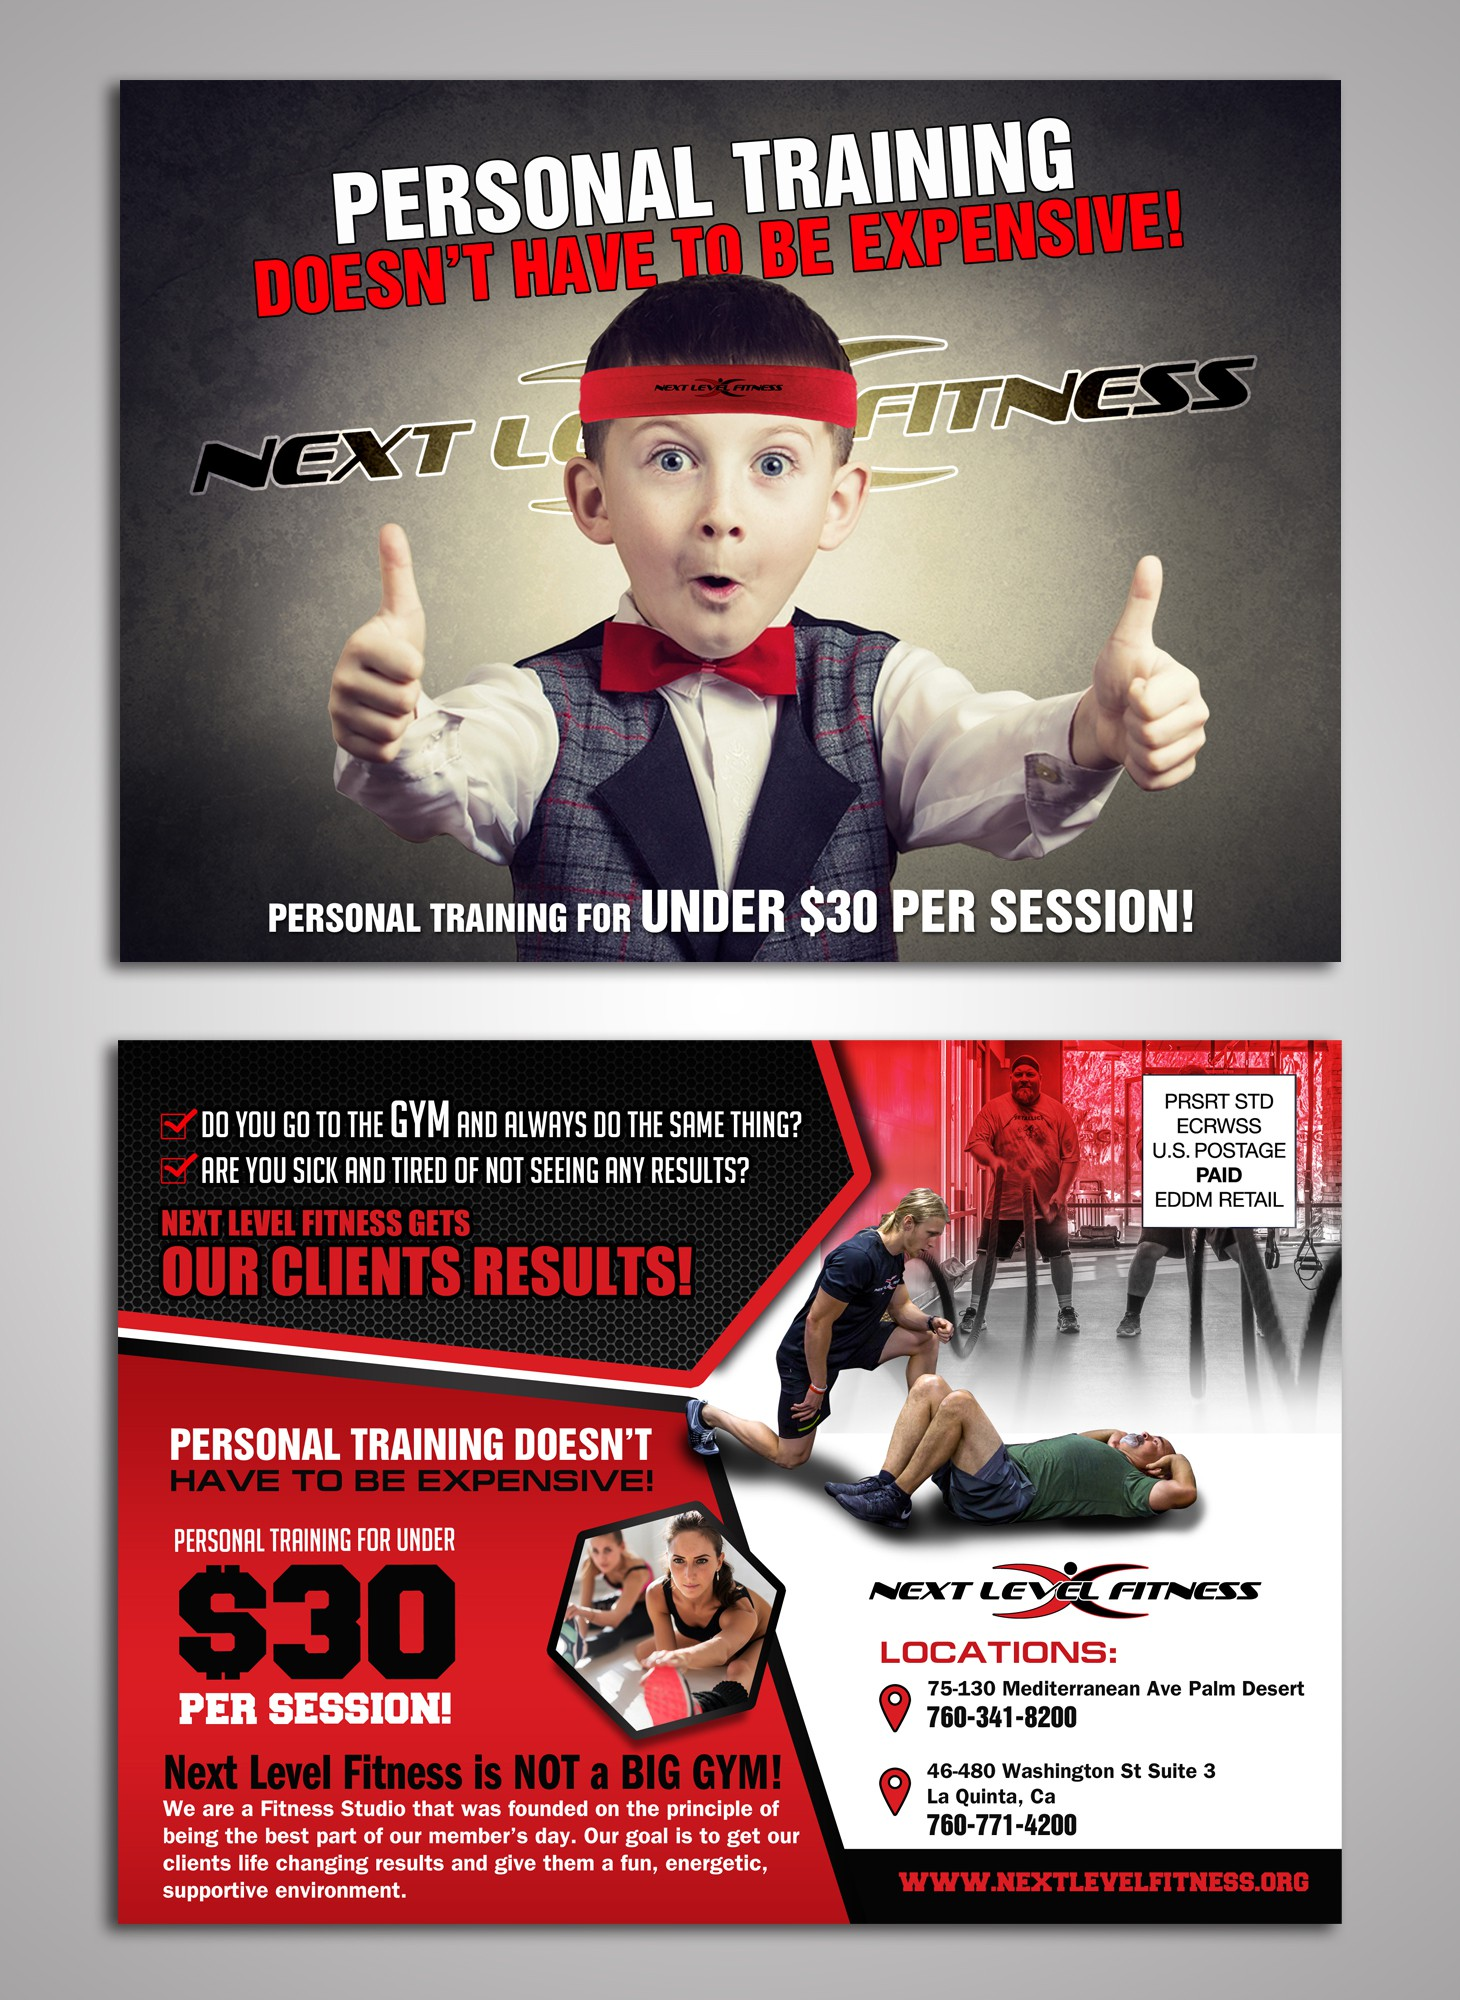 Fitness Postcard - motivate others